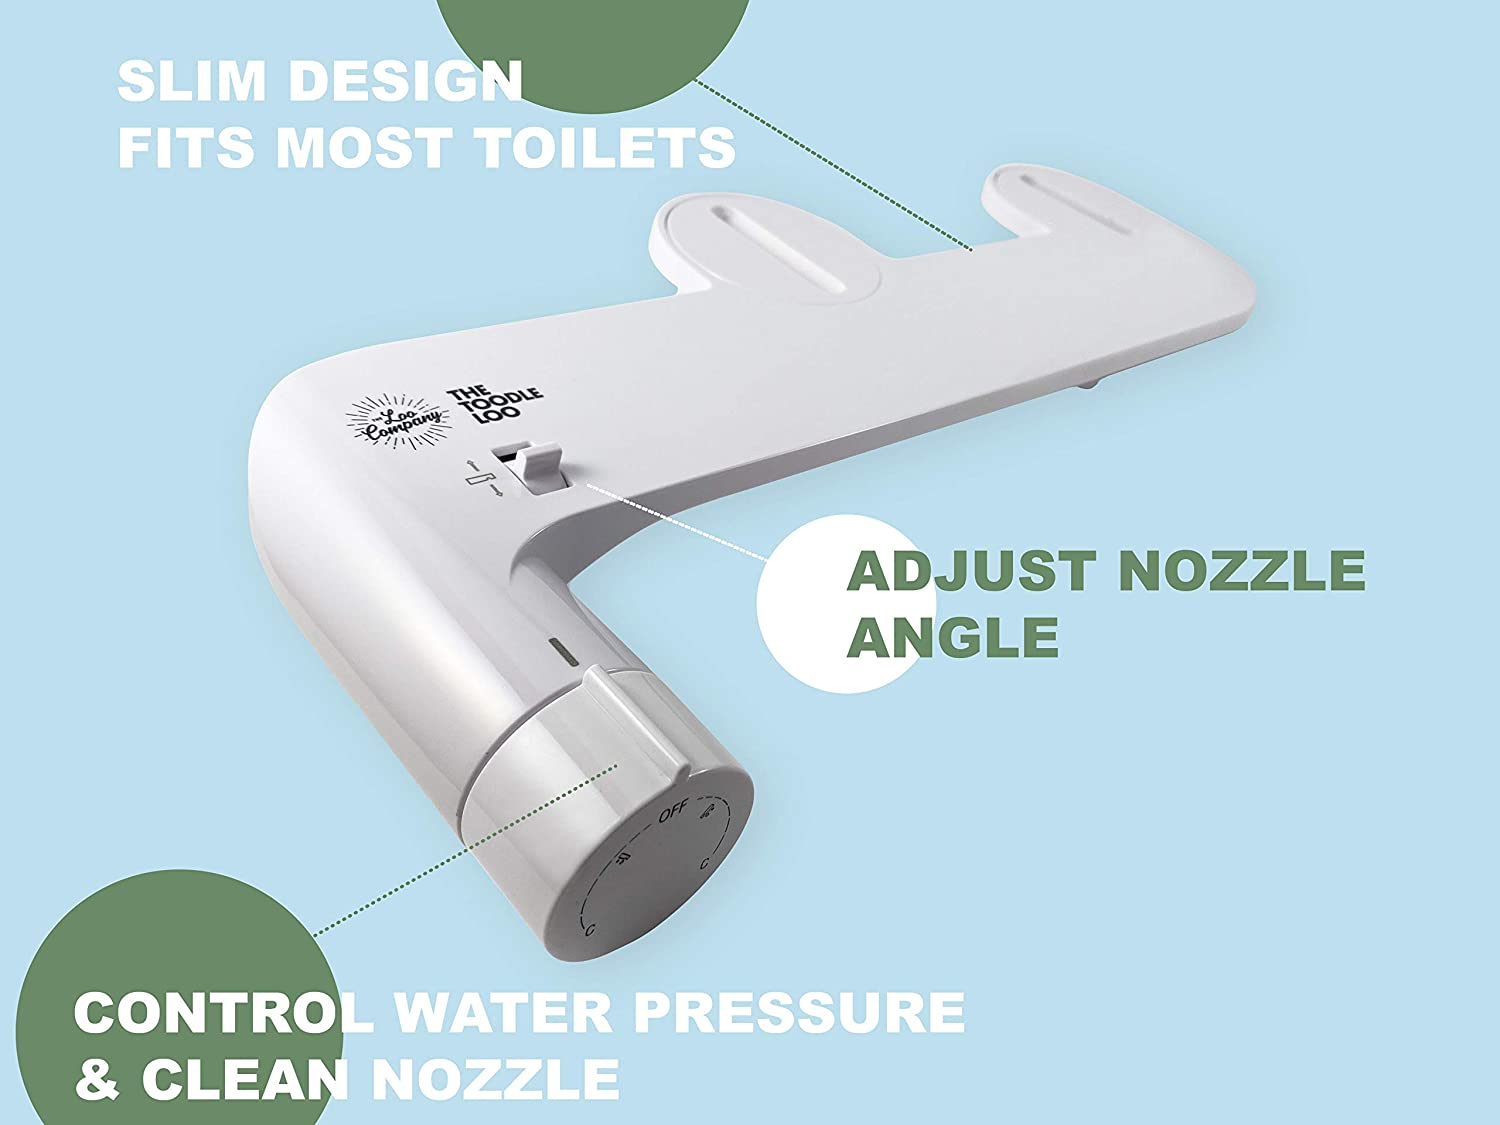 Adjustable Self Cleaning Nozzle Fresh Water Sprayer Non-Electric Toodle Loo Bidet Toilet Seat Attachment